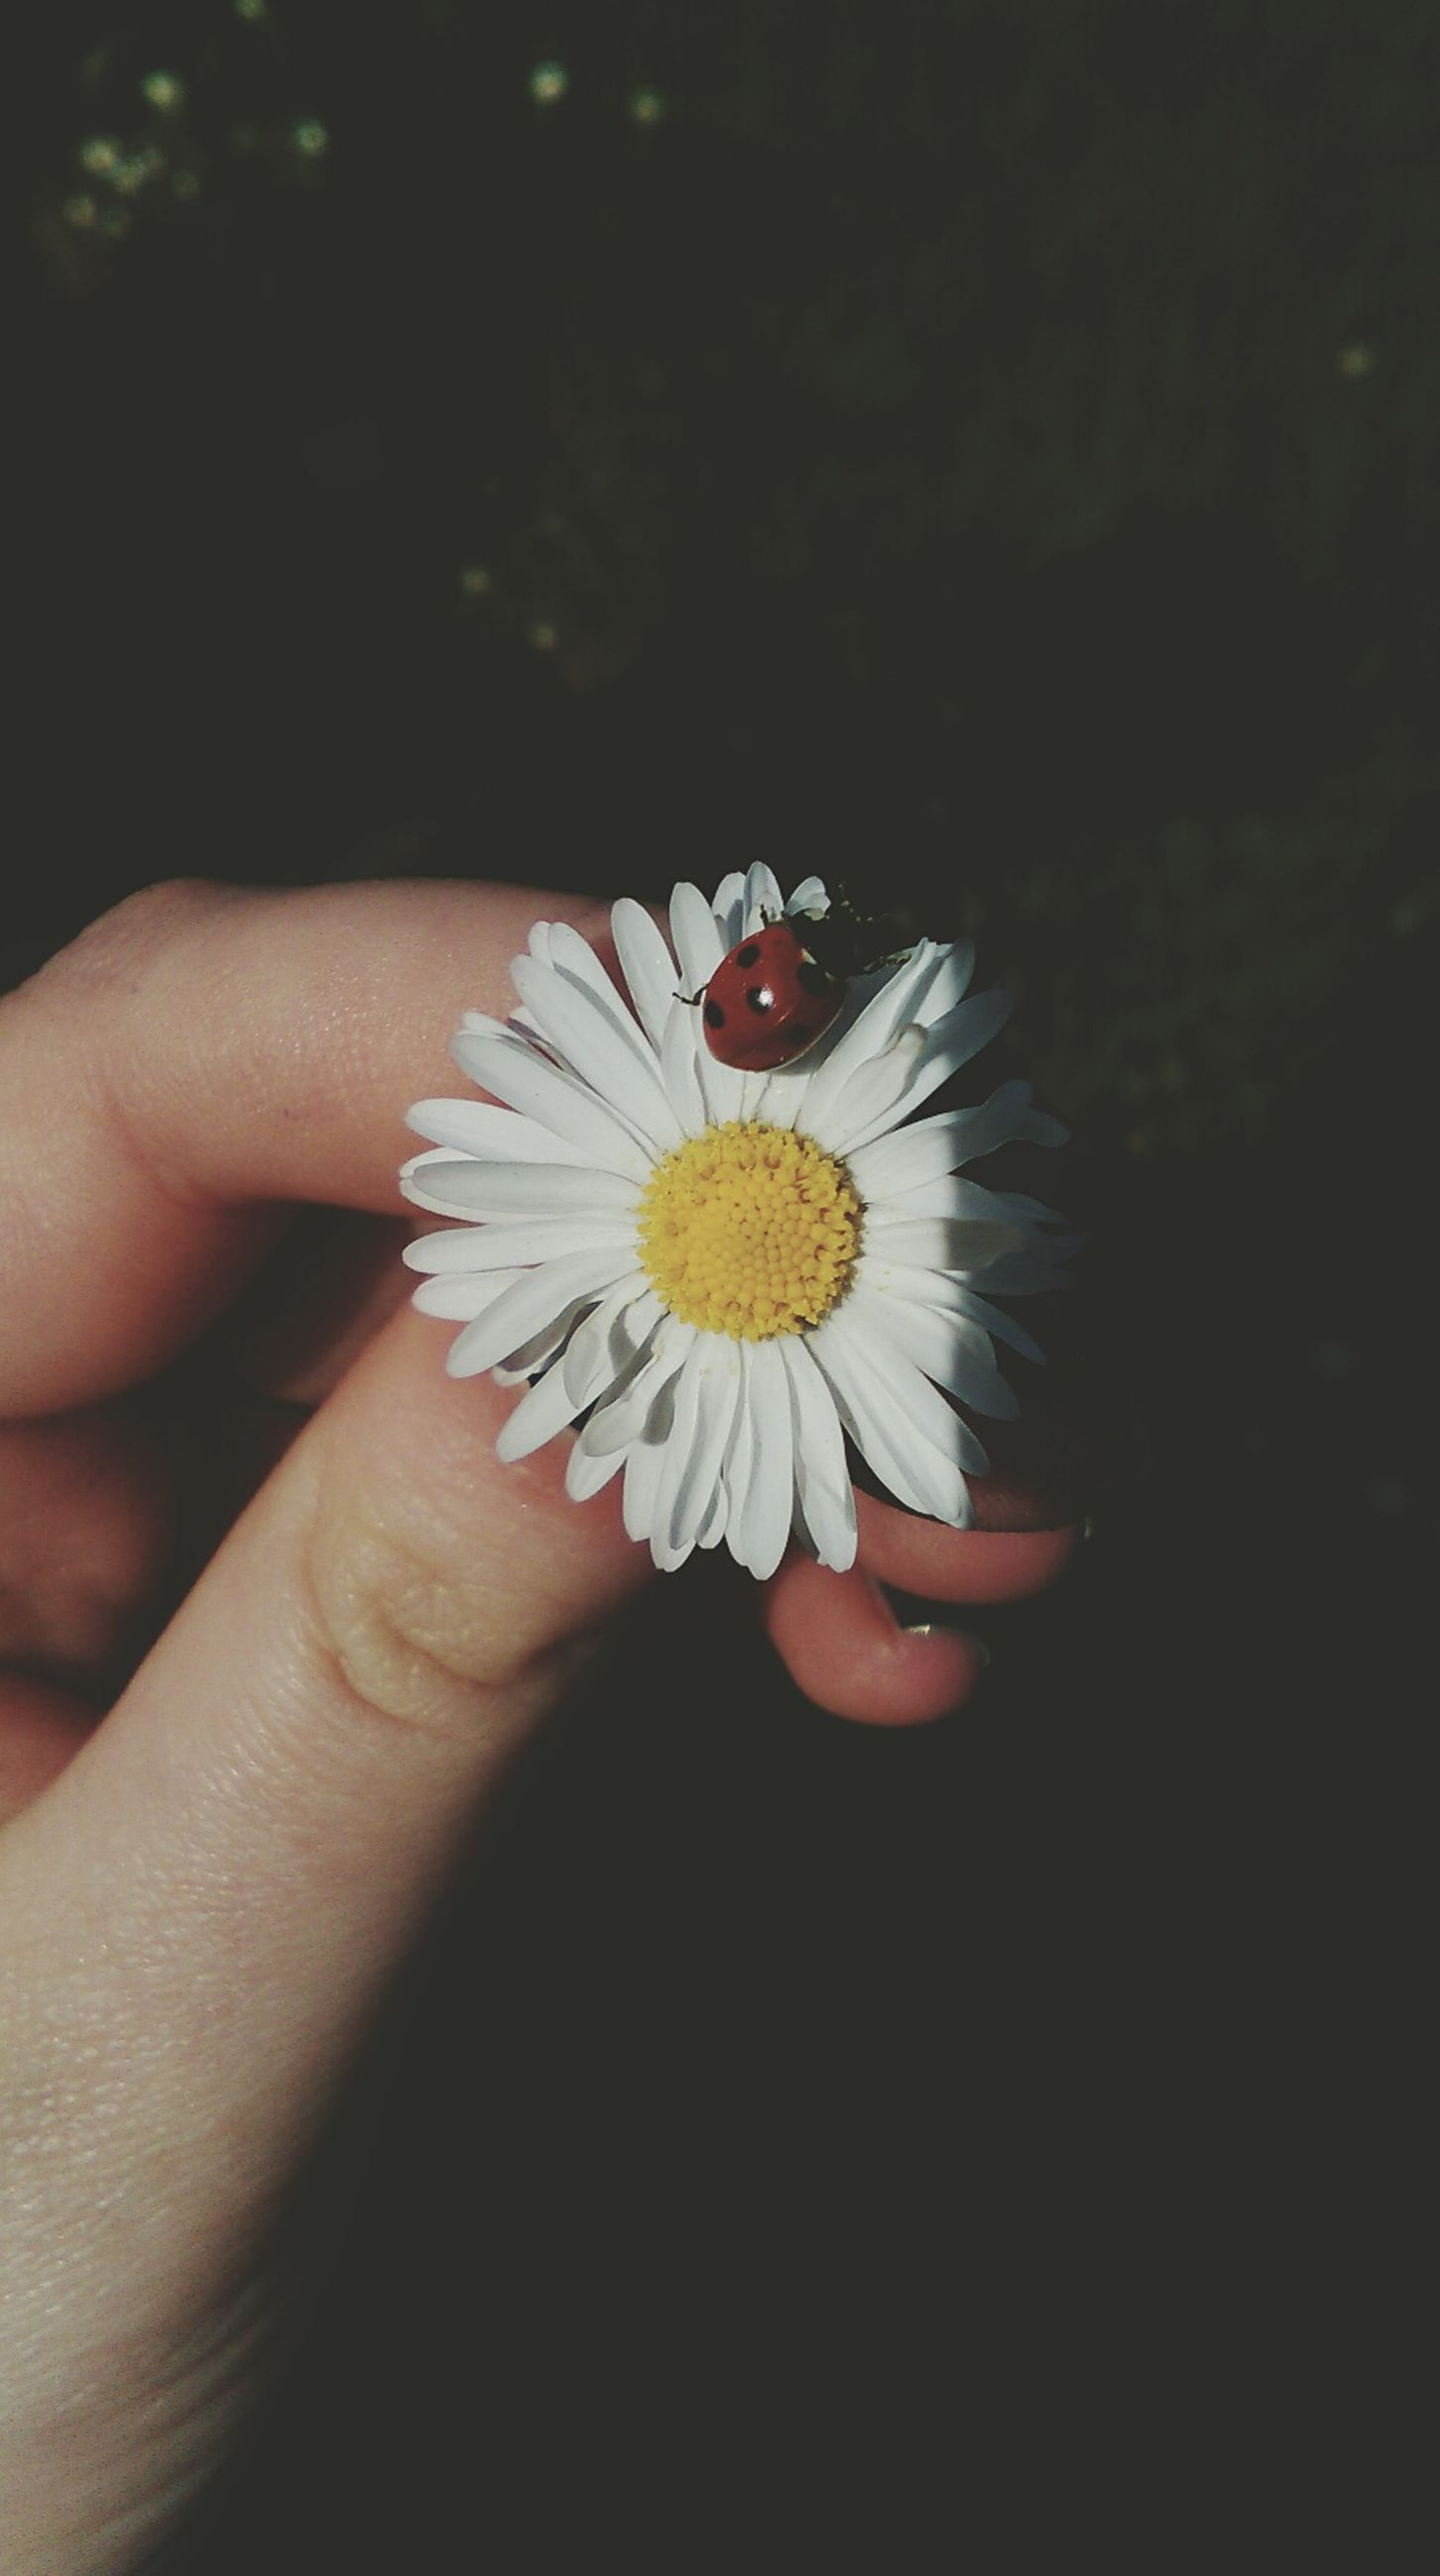 flower, person, petal, flower head, holding, fragility, freshness, single flower, part of, human finger, cropped, daisy, pollen, white color, close-up, unrecognizable person, beauty in nature